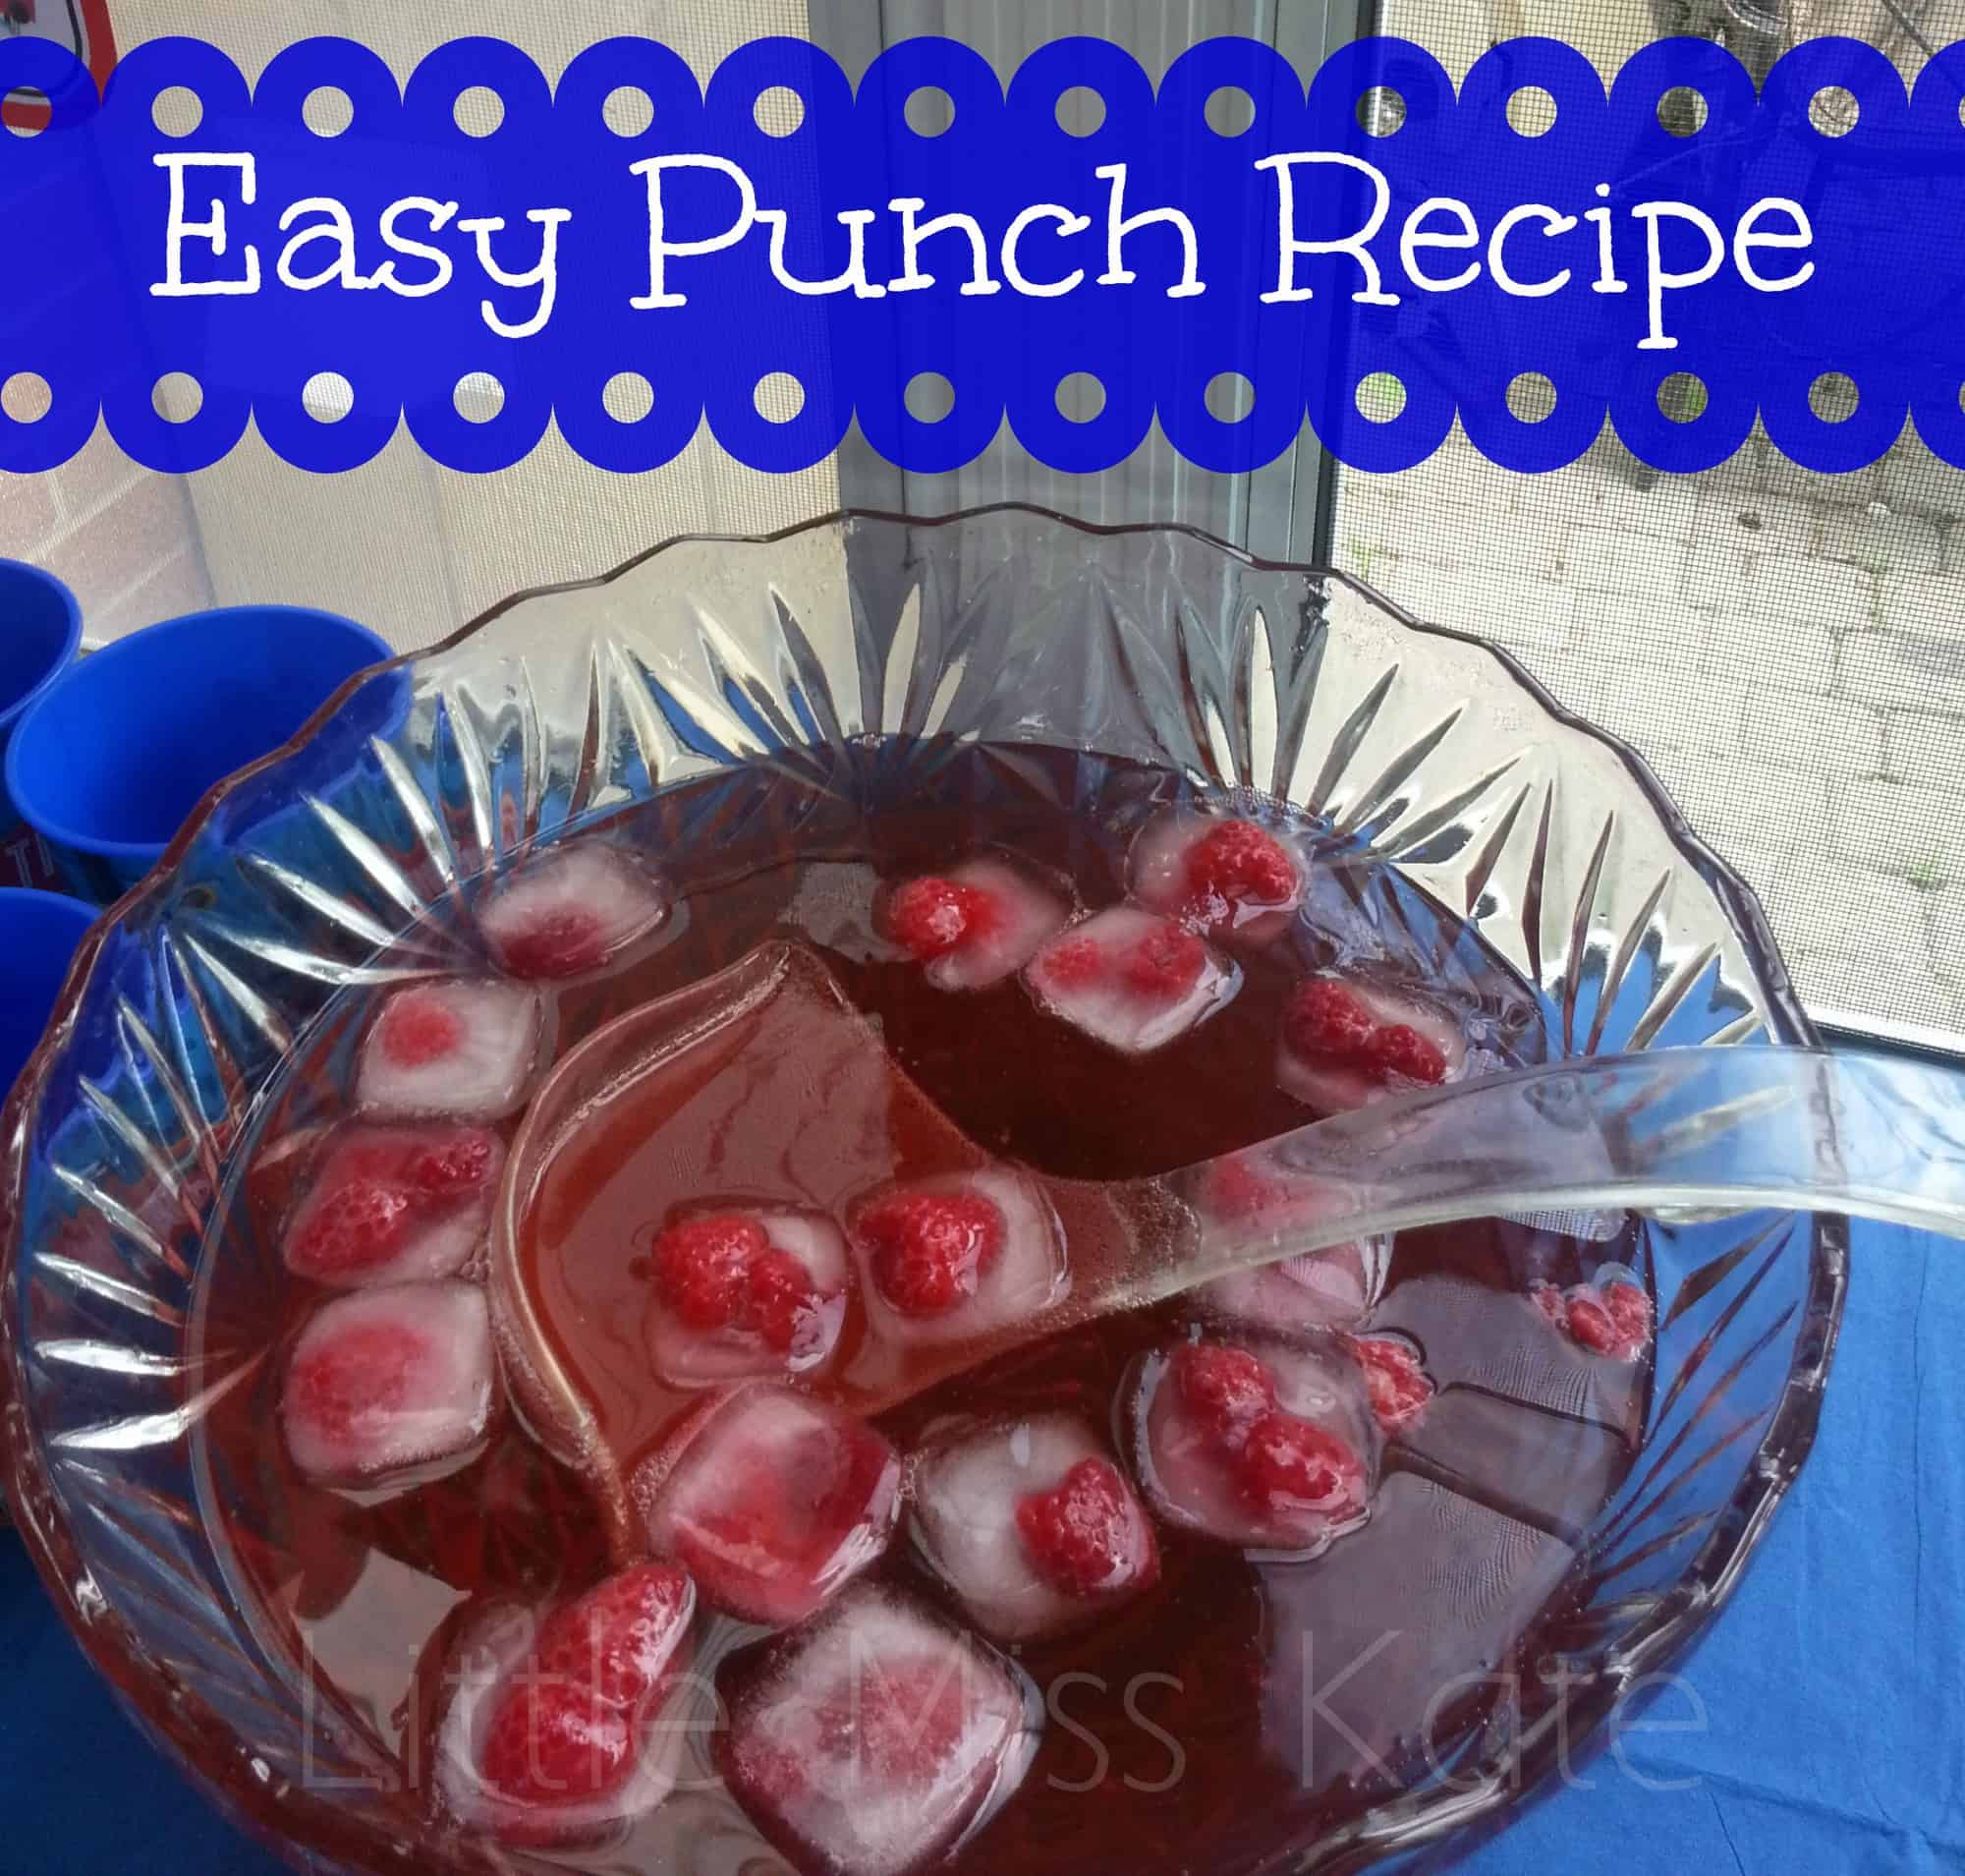 Easy Punch Recipe